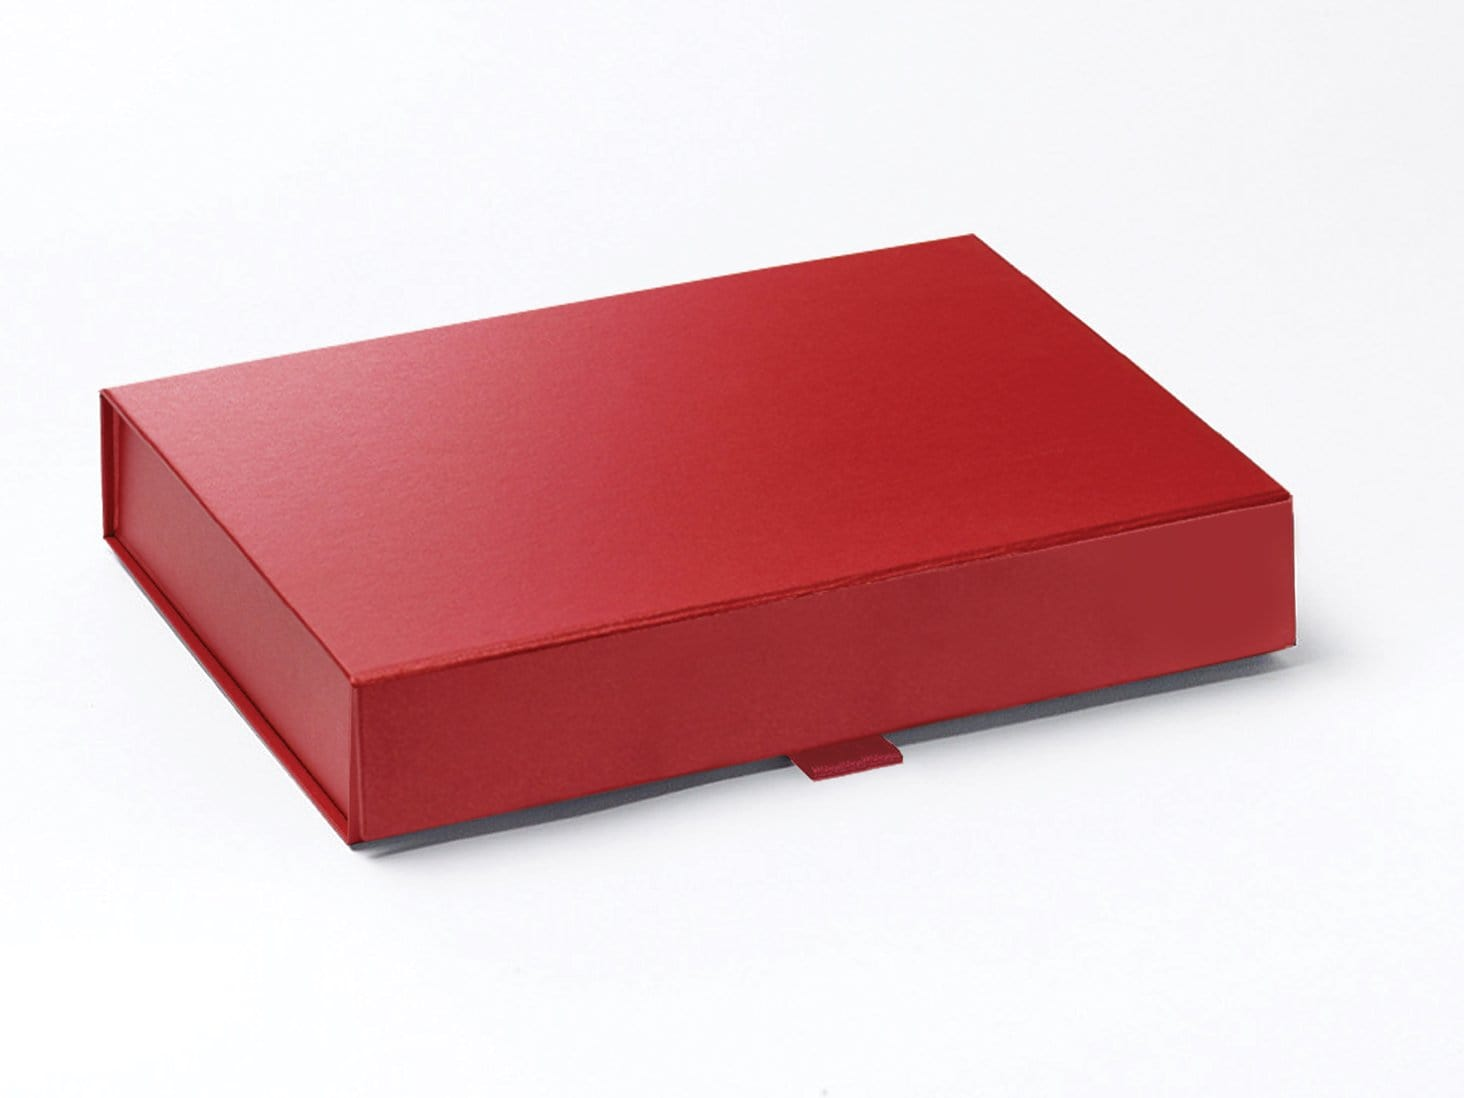 A5 Shallow Red Pearl Folding Gift Box with Magnetic Snap Shut Closure